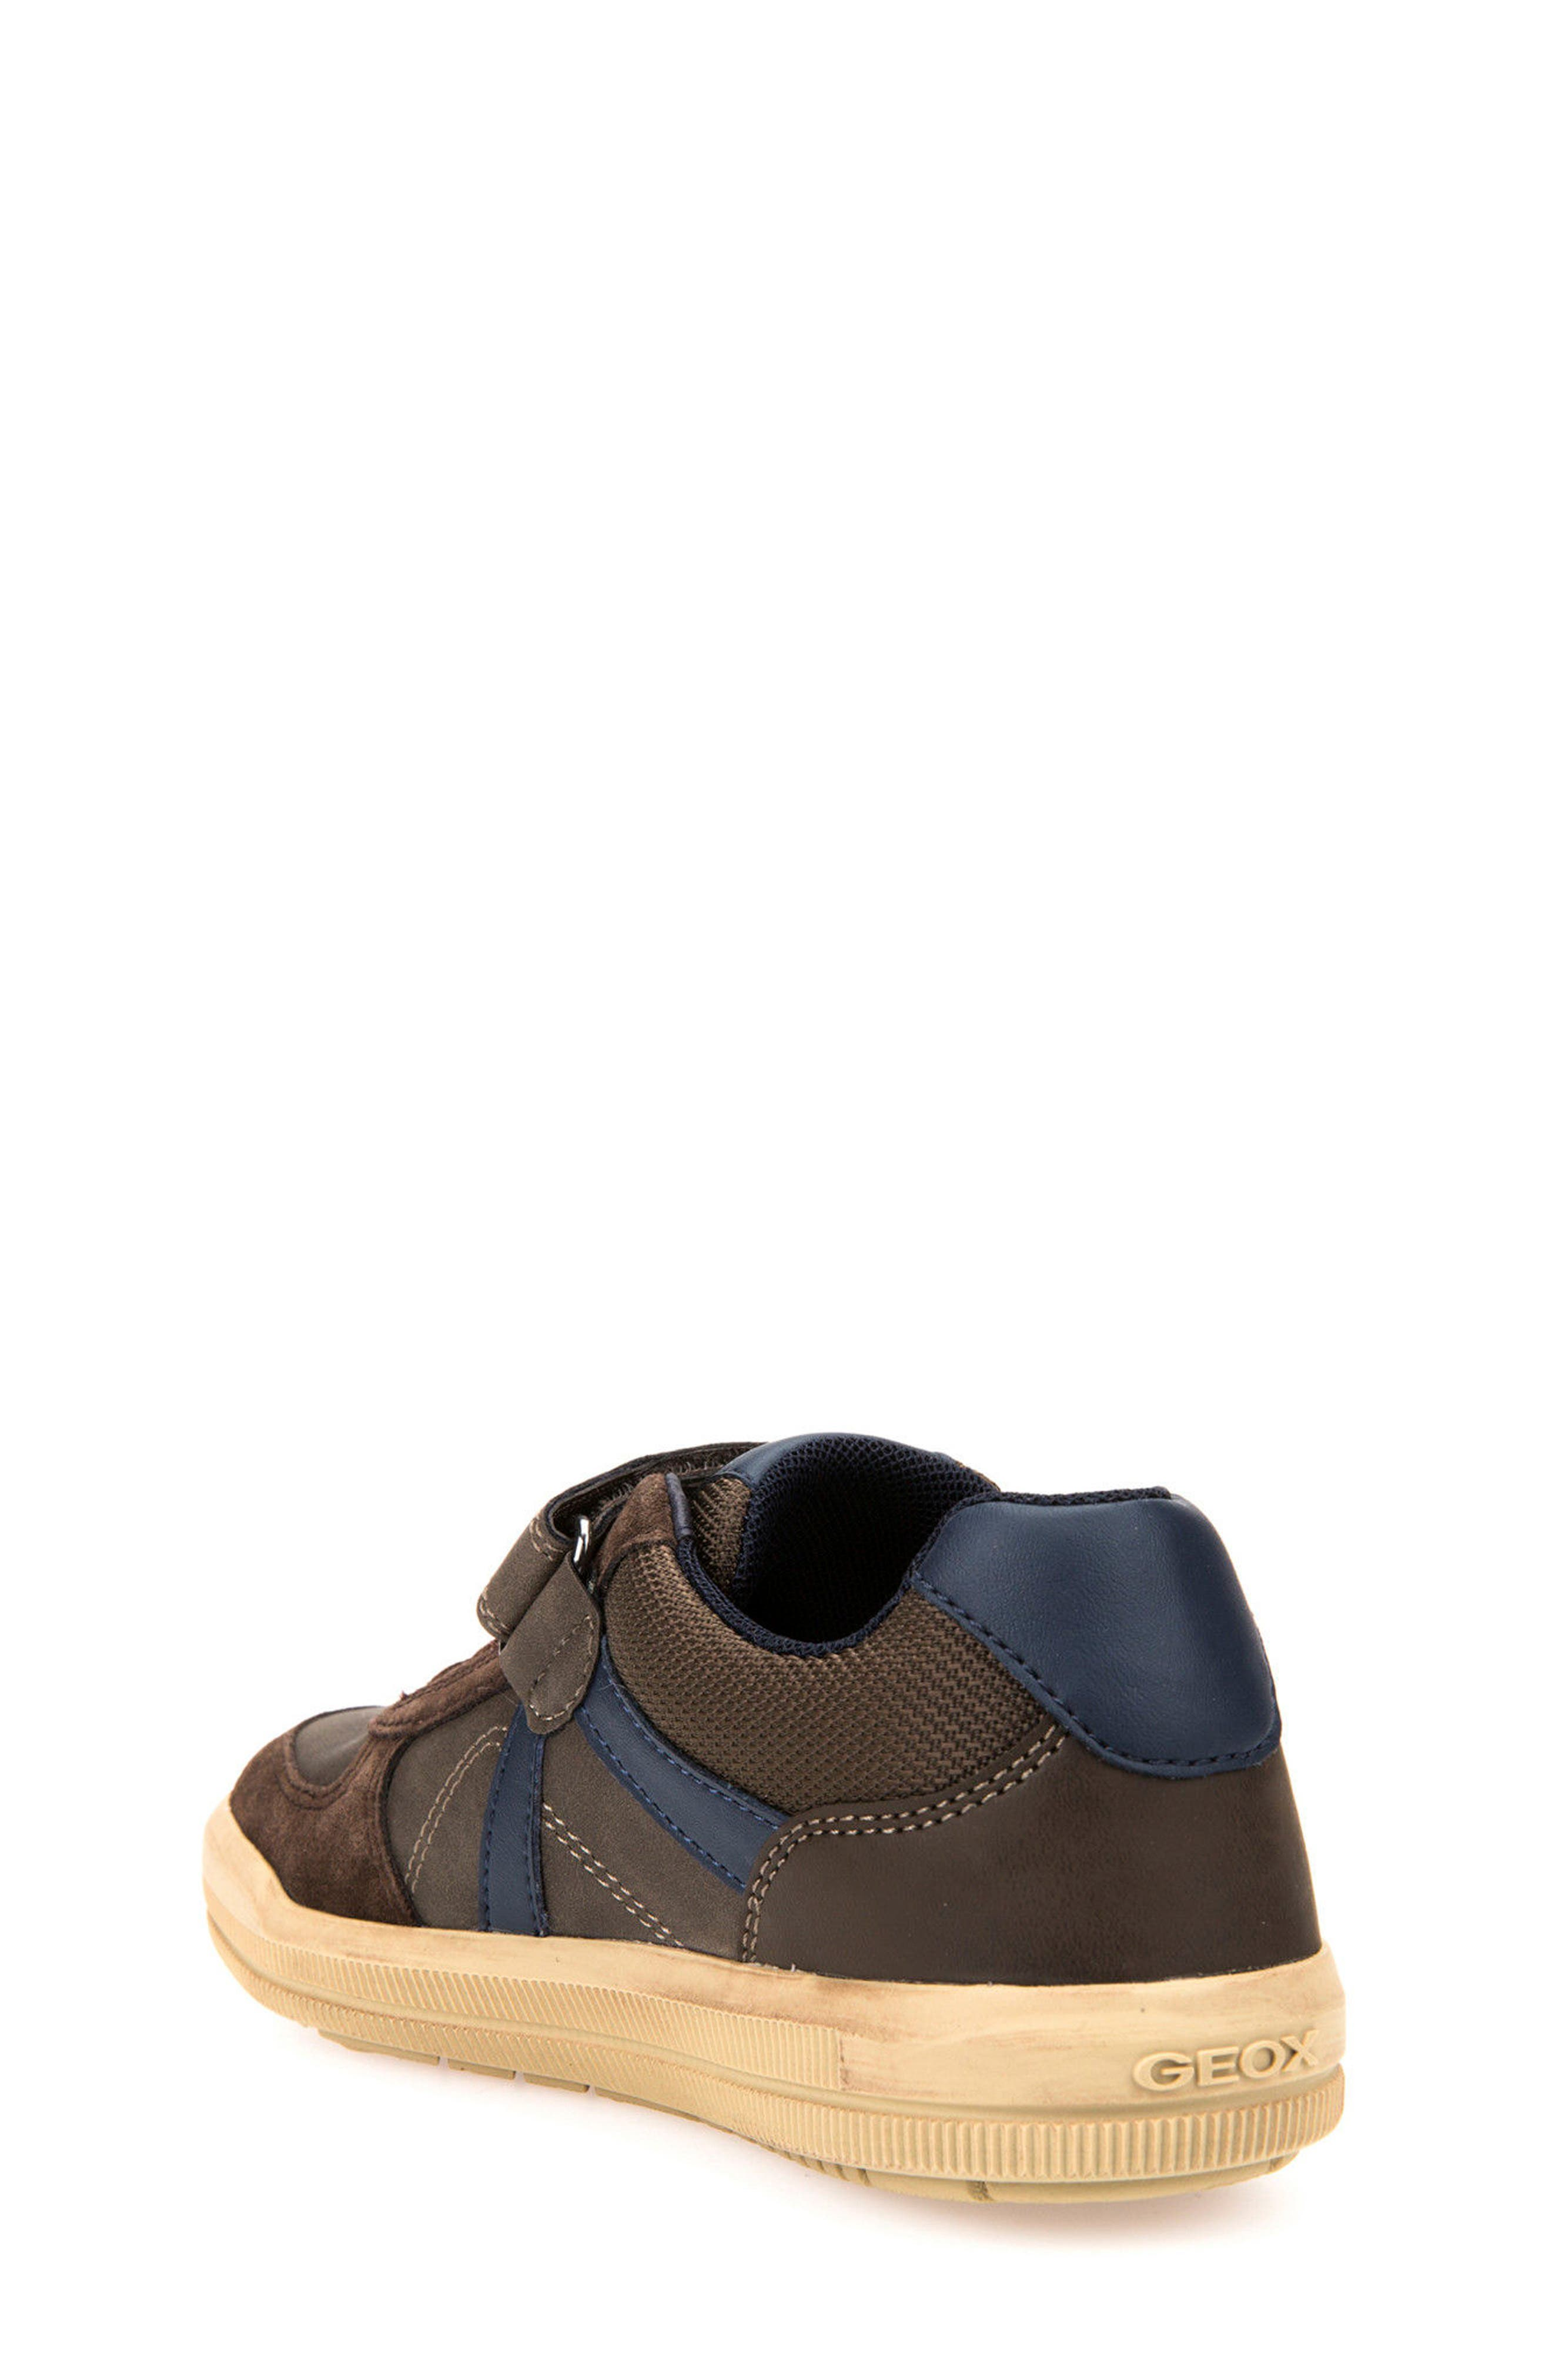 Arzach Low Top Sneaker,                             Alternate thumbnail 2, color,                             Brown/ Navy